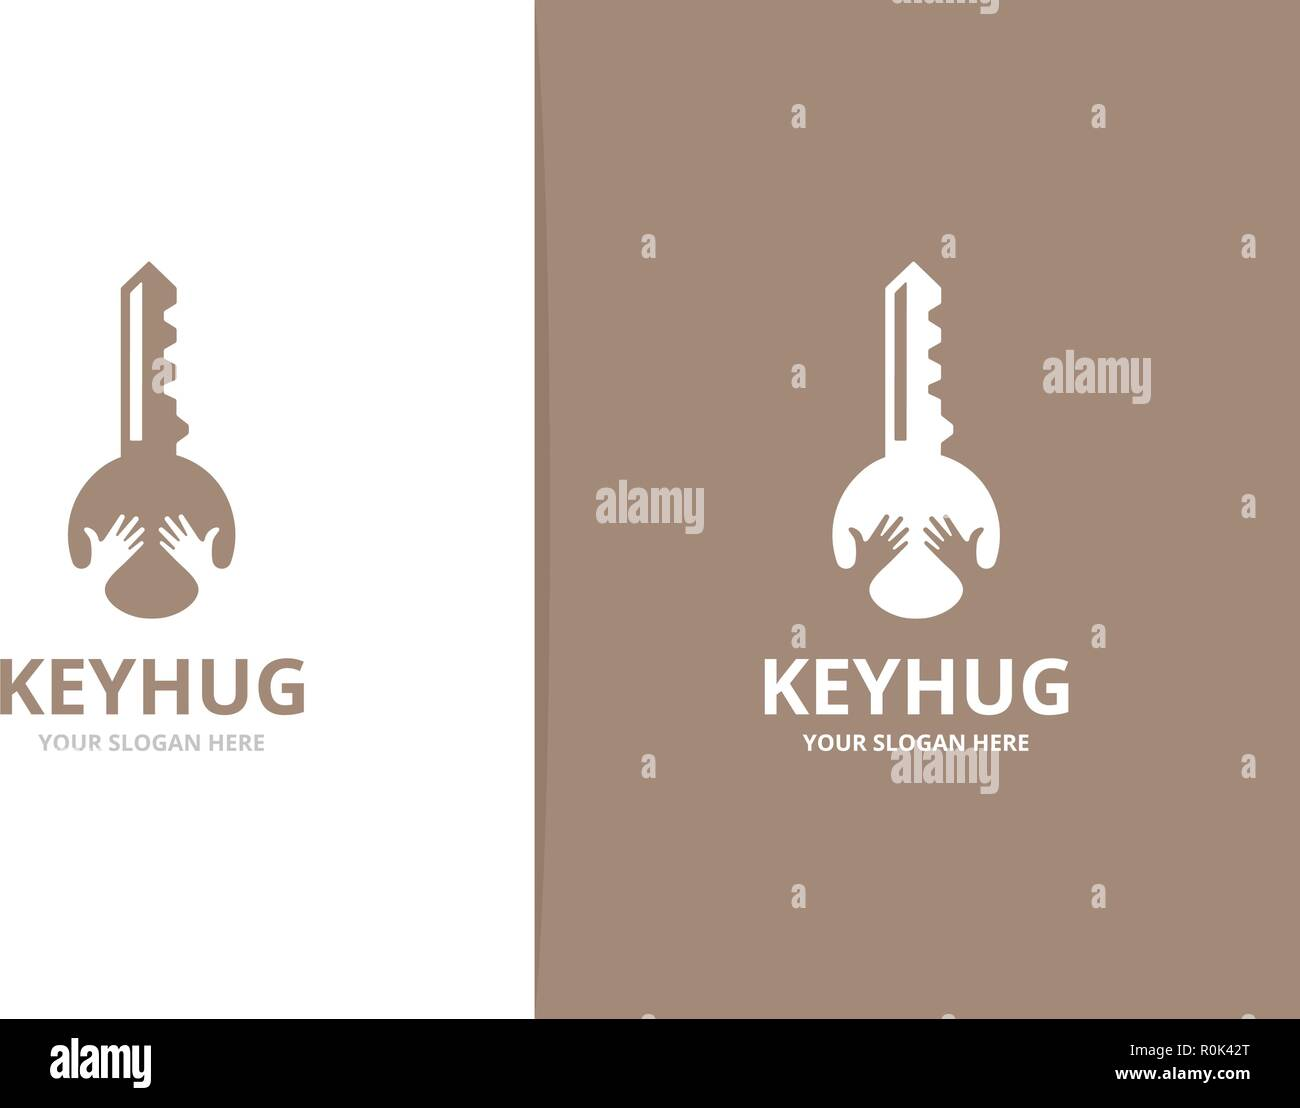 Vector key and hands logo combination. Lock and embrace symbol or icon. Unique house and friendship logotype design template. - Stock Image